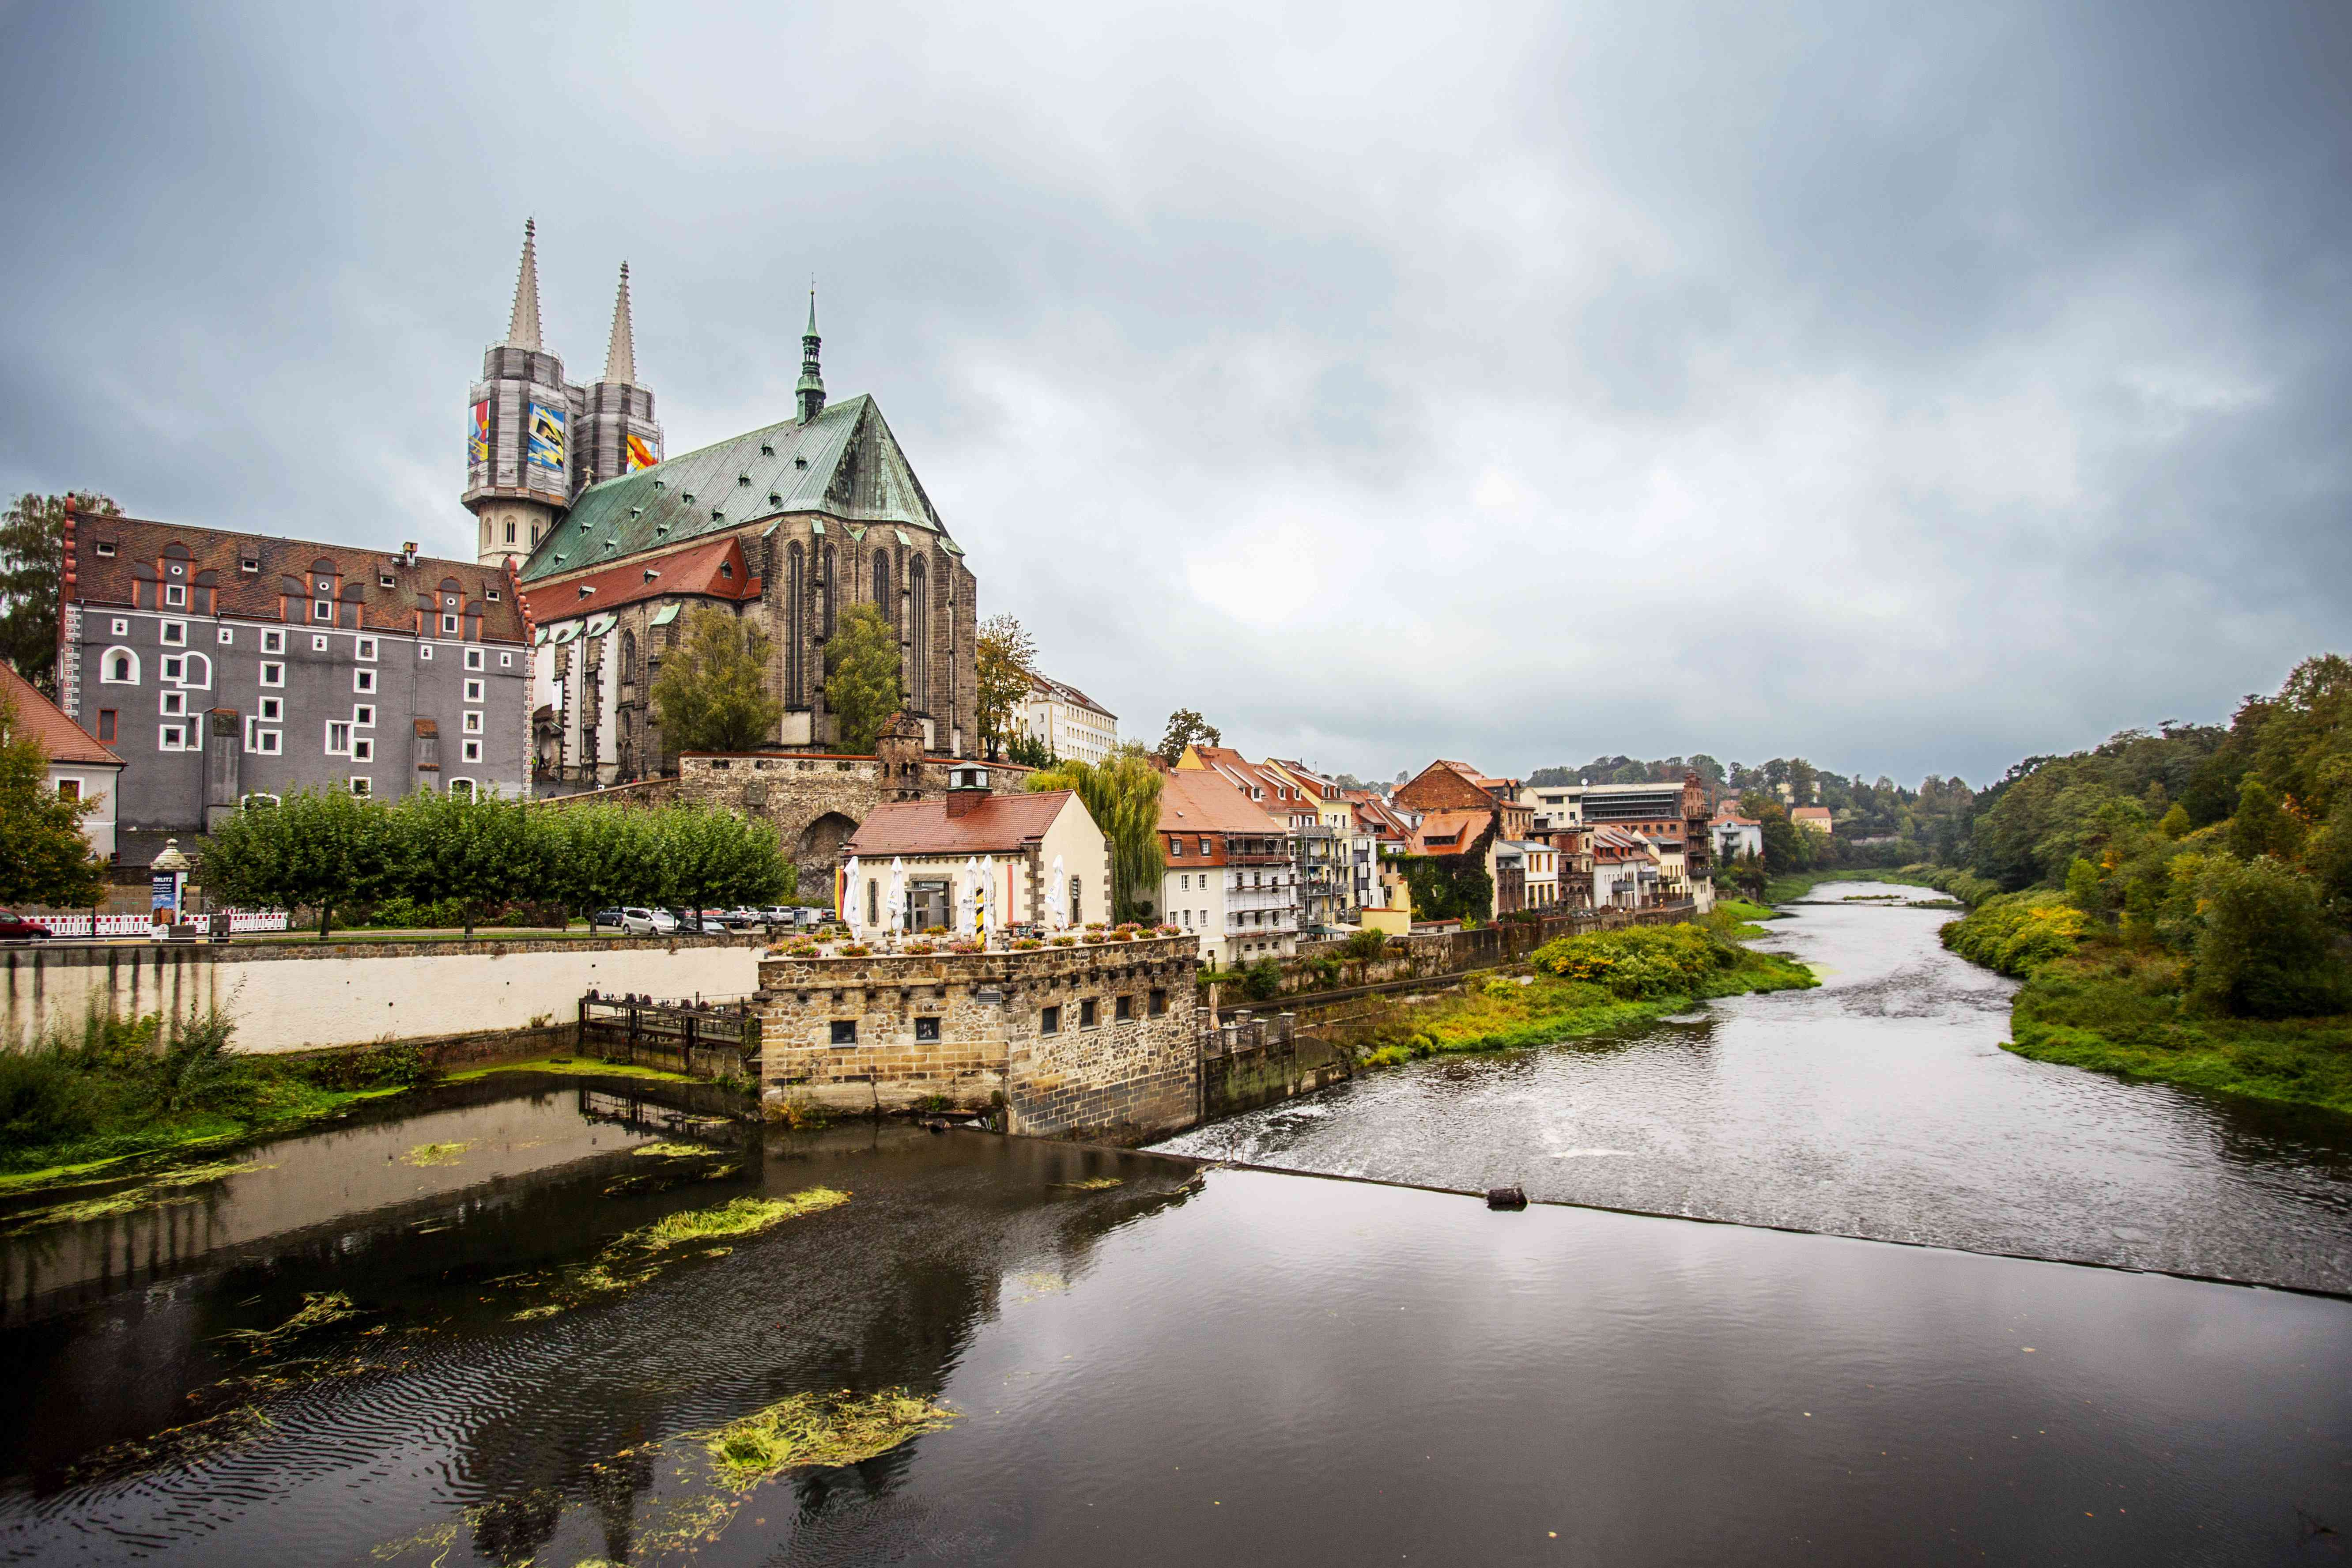 Wide shot of architecture in Gorlitz that sits along the river